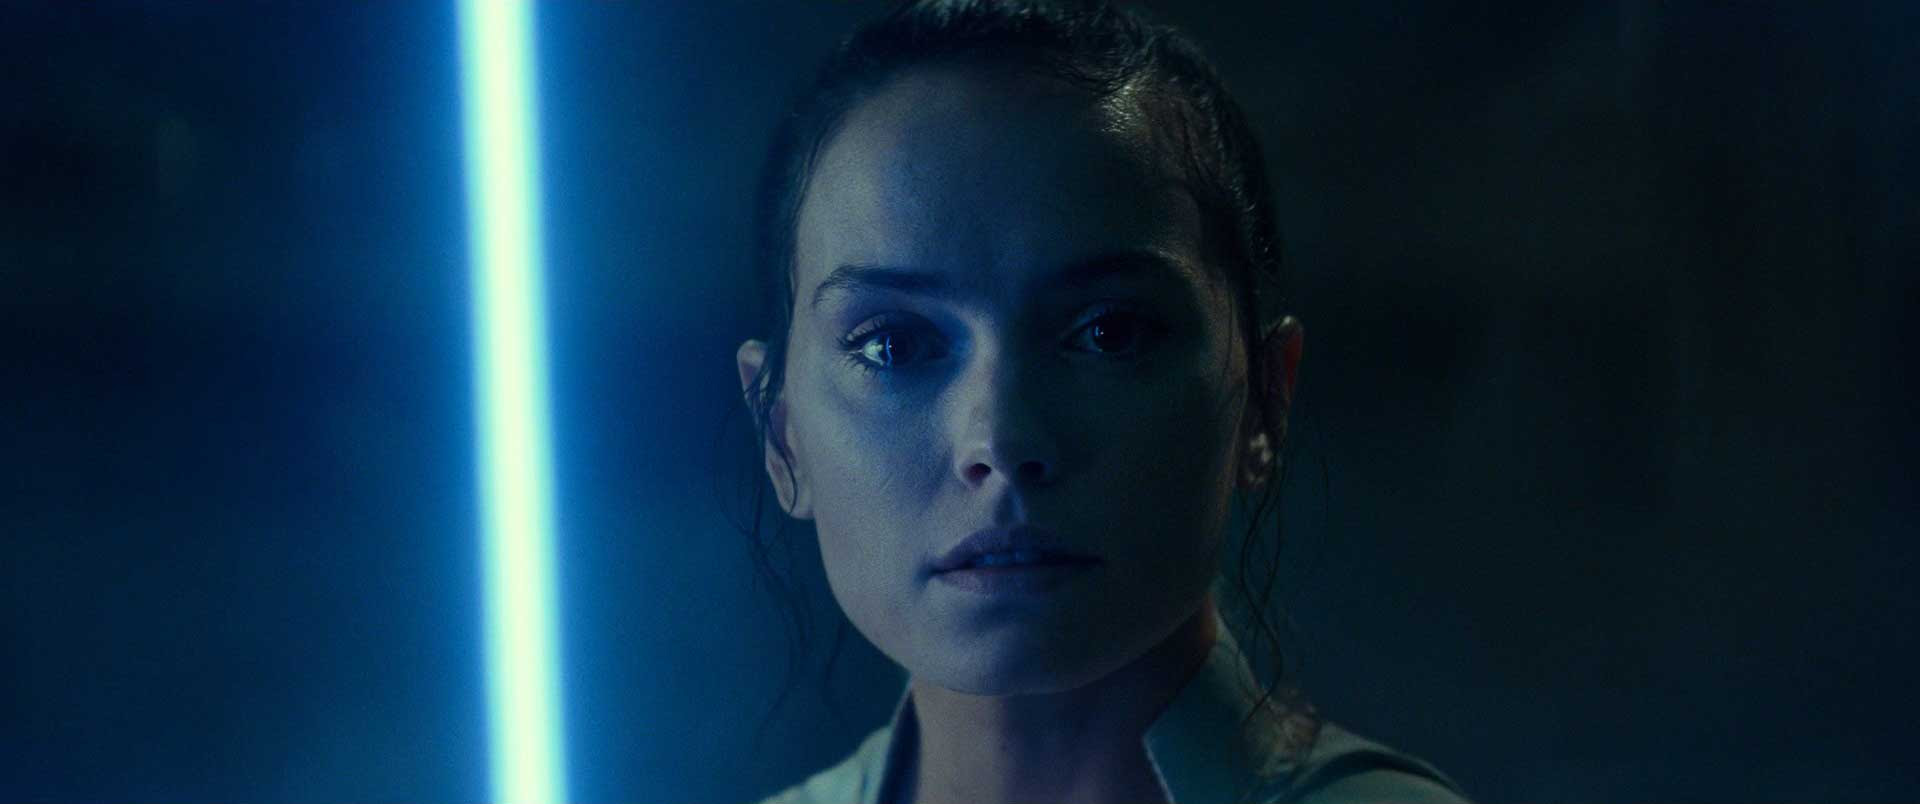 Over 42 Hires Stills From Star Wars Episode Ix The Rise Of